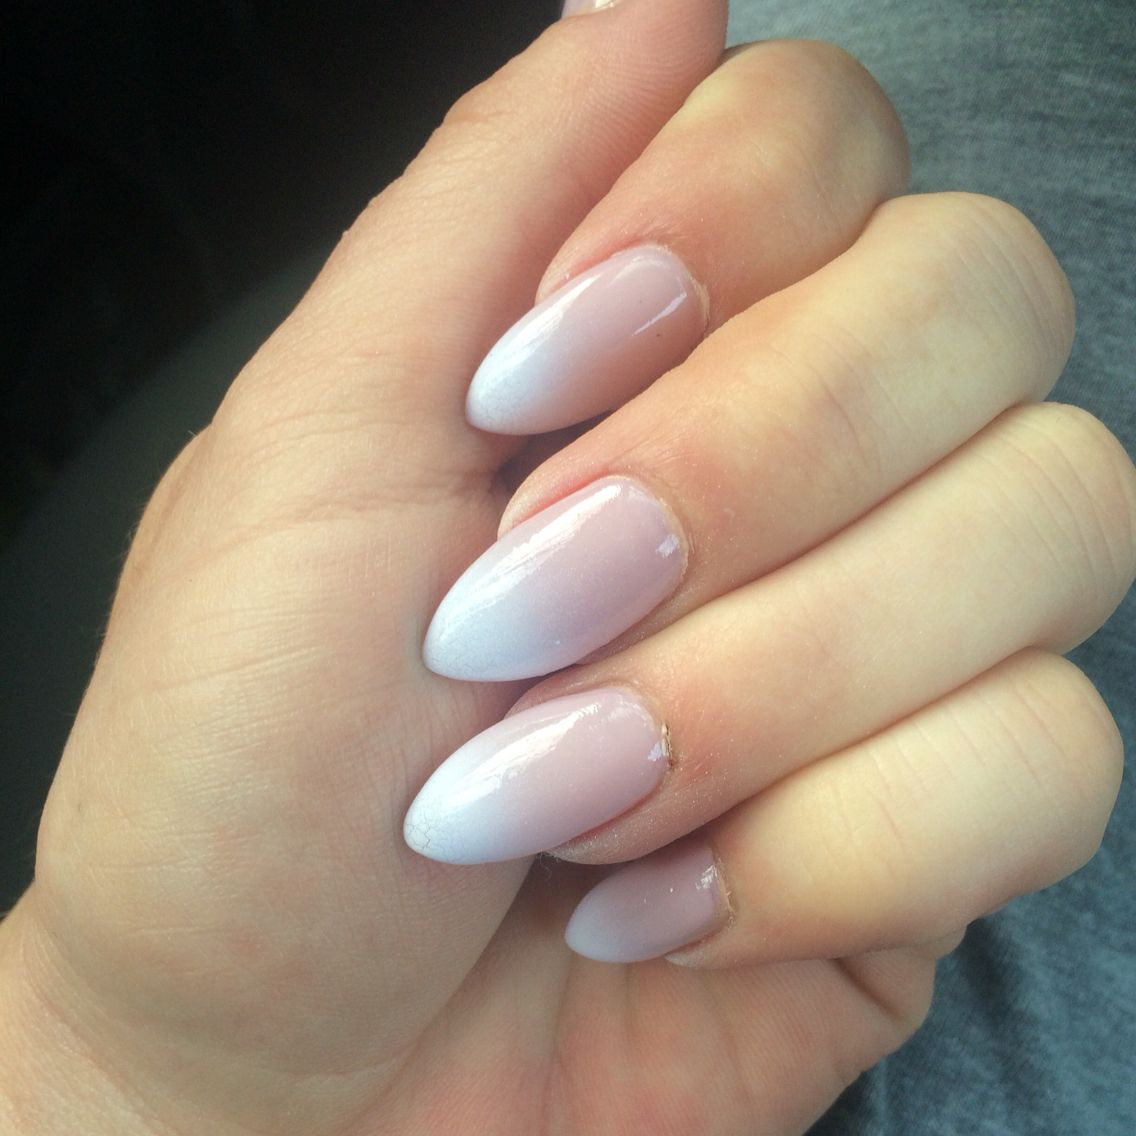 Ombré French tip almond shaped nails | Makeup/hair | Pinterest ...